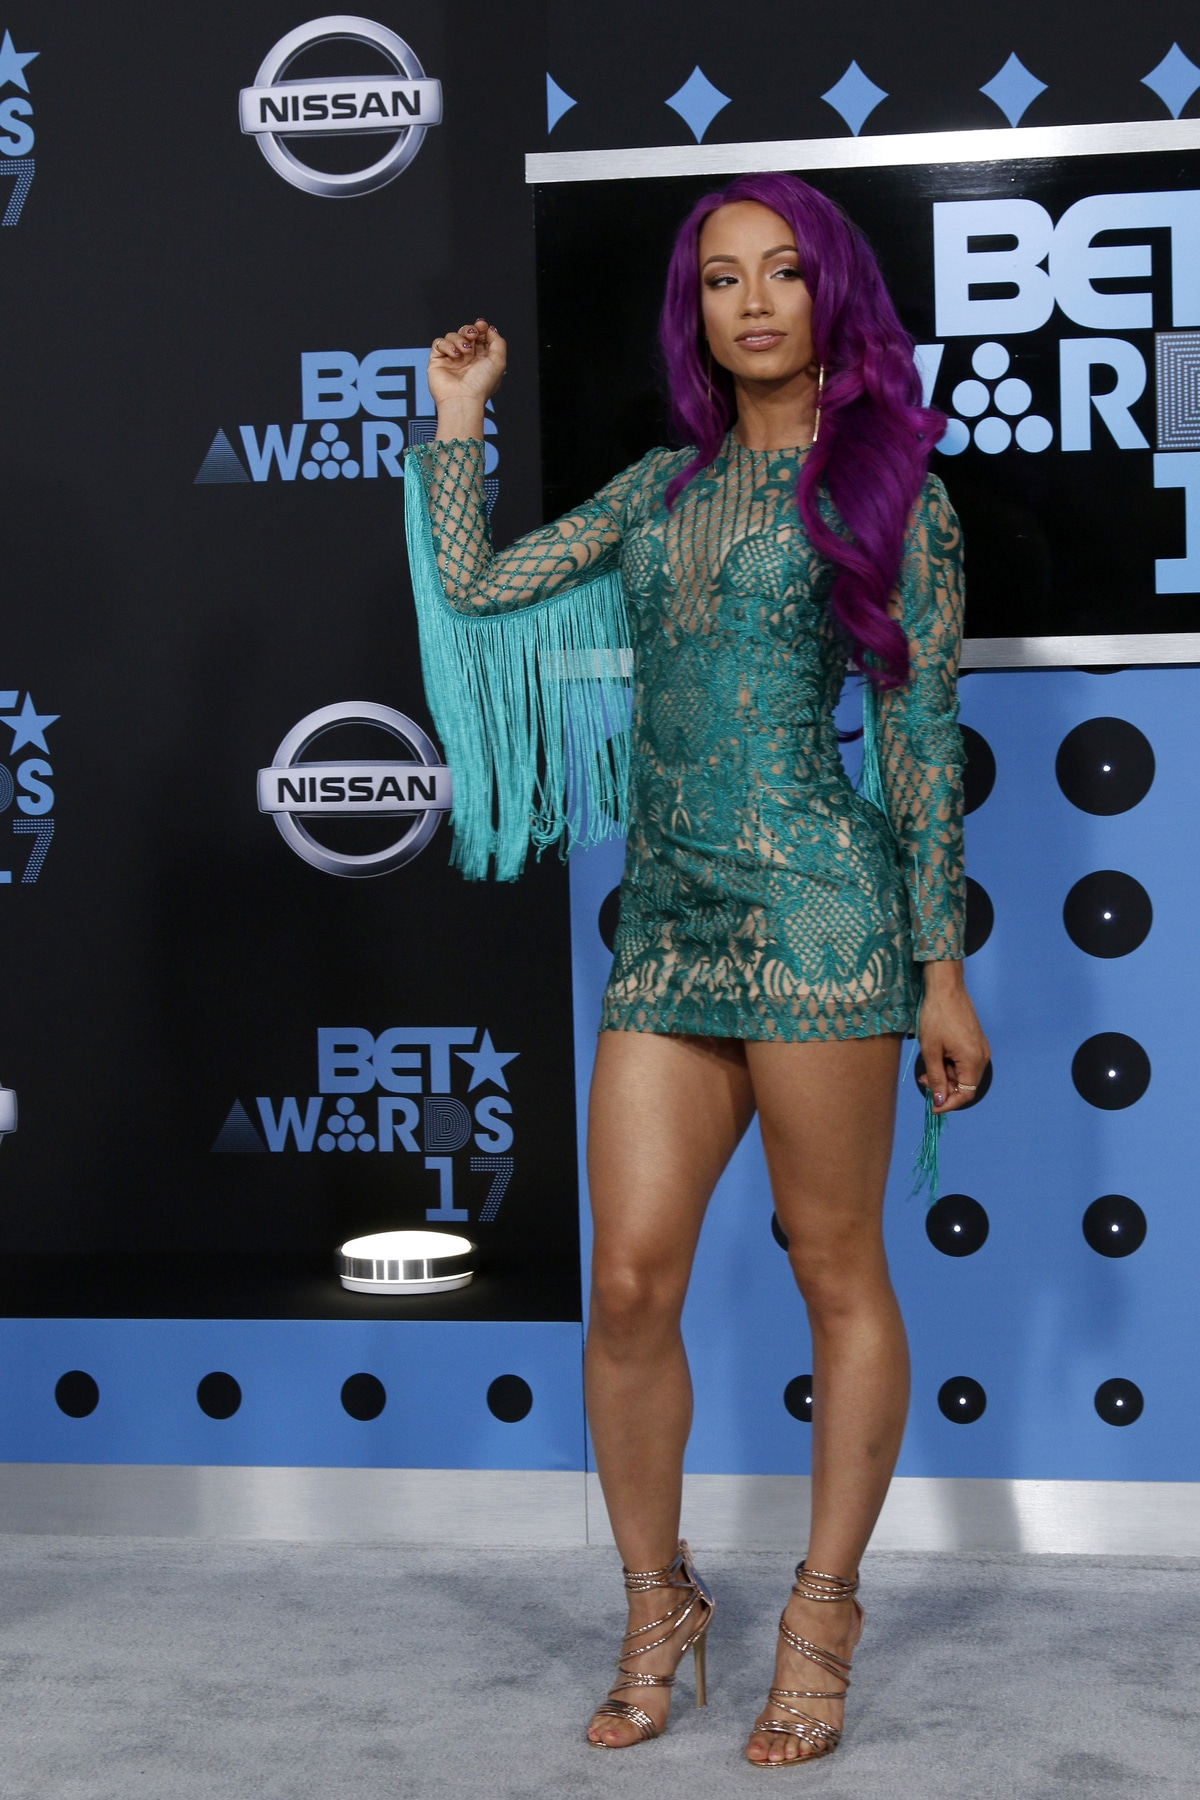 Sasha Banks from The Mandalorian at the BET Awards